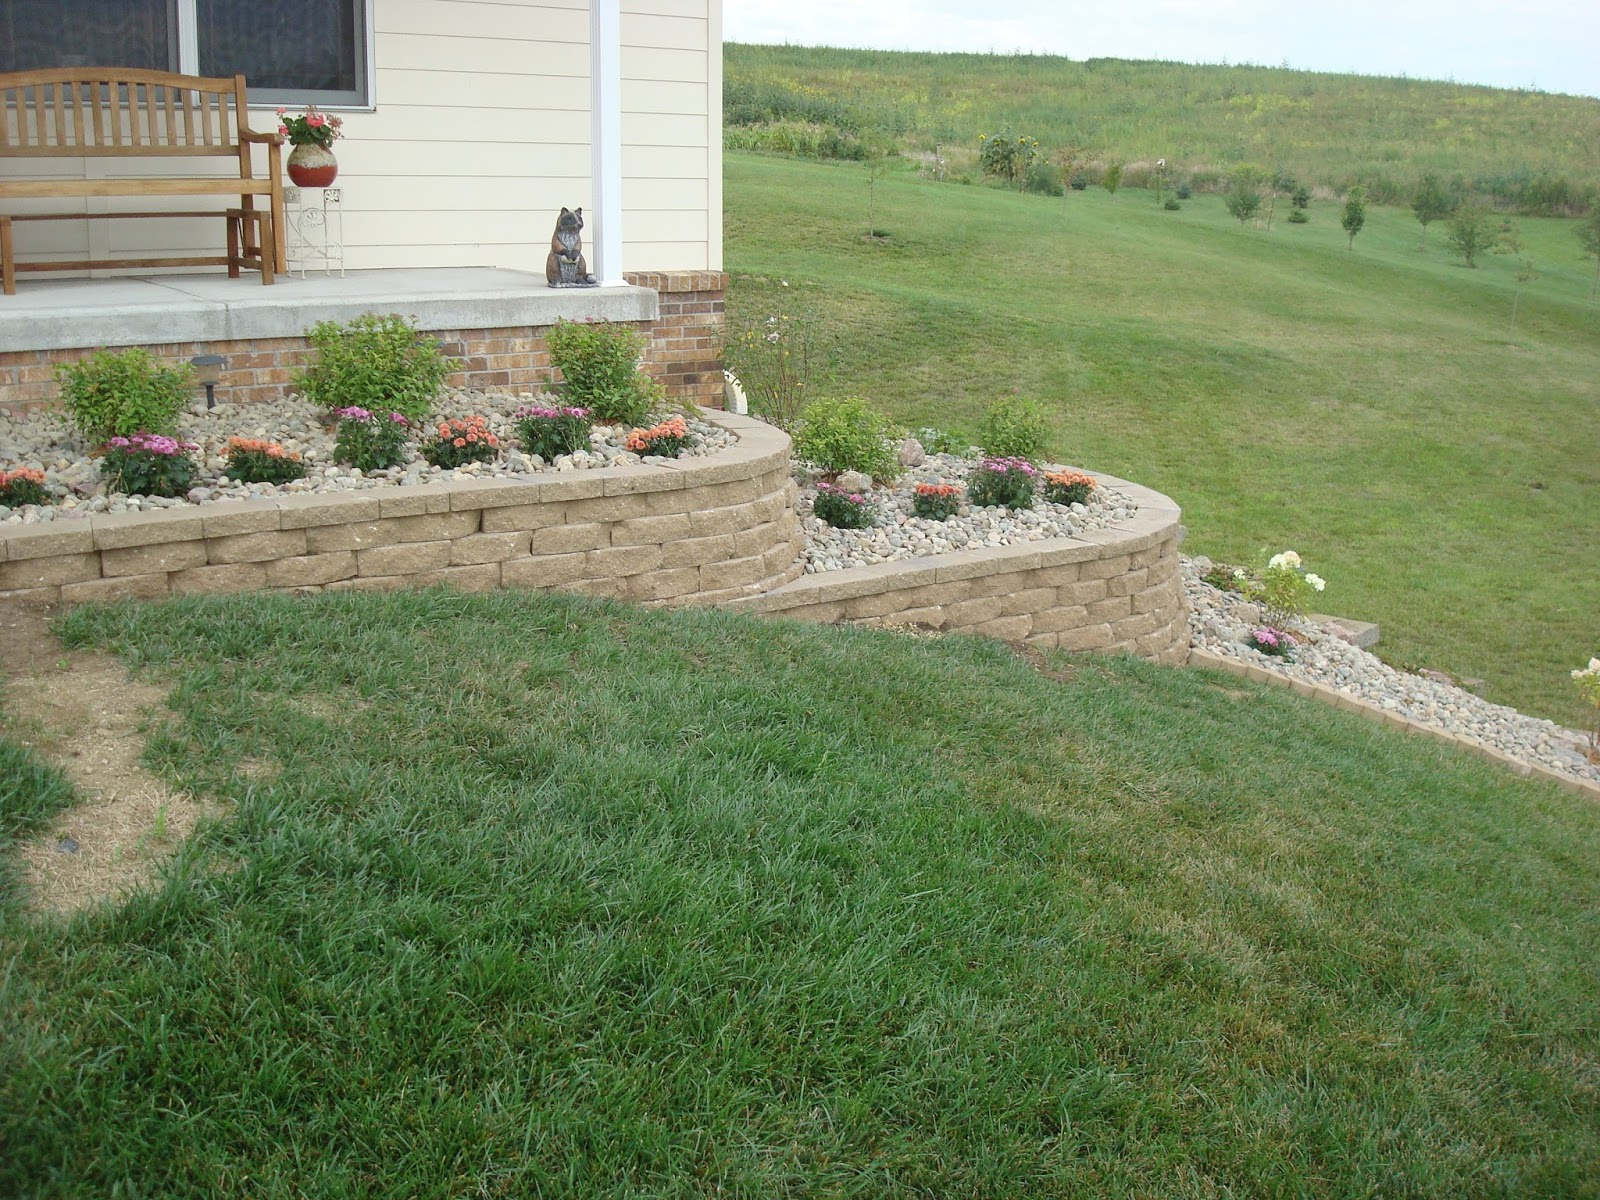 Diy Retaining Wall Backyard : Dishing Up Design DIY Retaining Wall & Landscaping